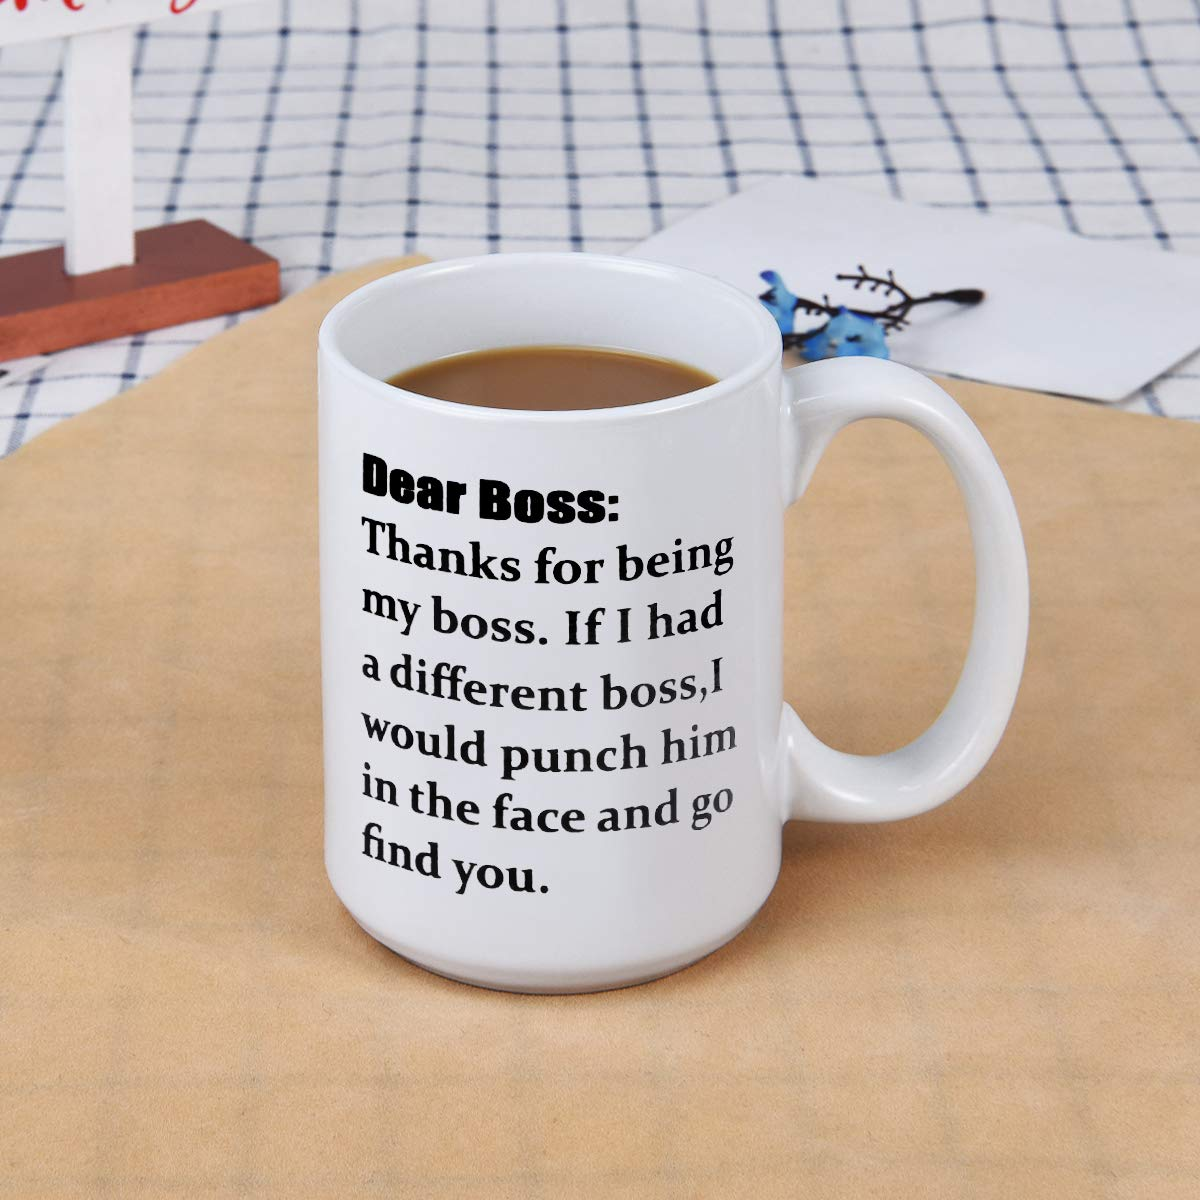 World/'s Best Boss-11 oz Funny Ceramic Mugs Coffee Cup Novelty Gift Present Idea for Male Female Bosses Coworkers Men Man Coffee Mug With Dunder Mifflin